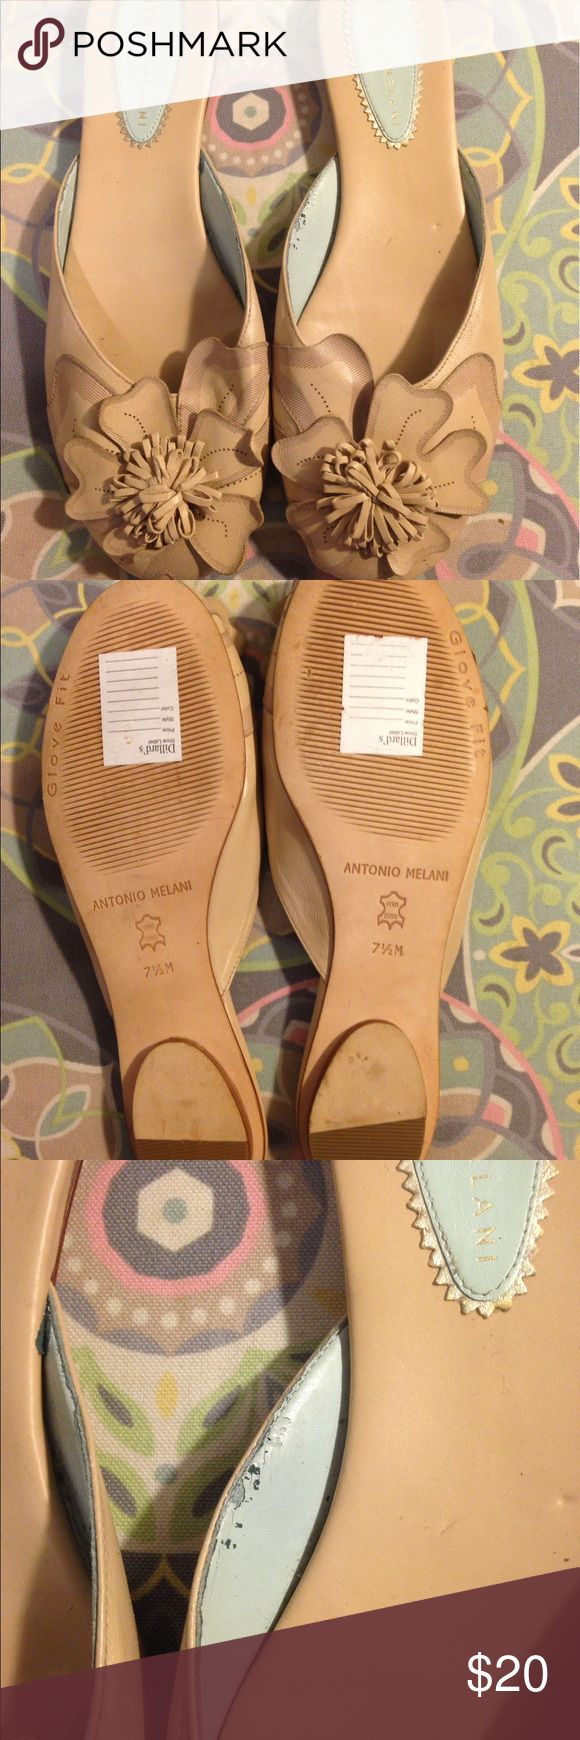 Antonio Melani flower leather slip-onssize 7.5 New slip-ons with flower detail by Antonio Melani size 7.5. The leather is damaged on the inside as seen in the picture. ANTONIO MELANI Shoes Flats & Loafers